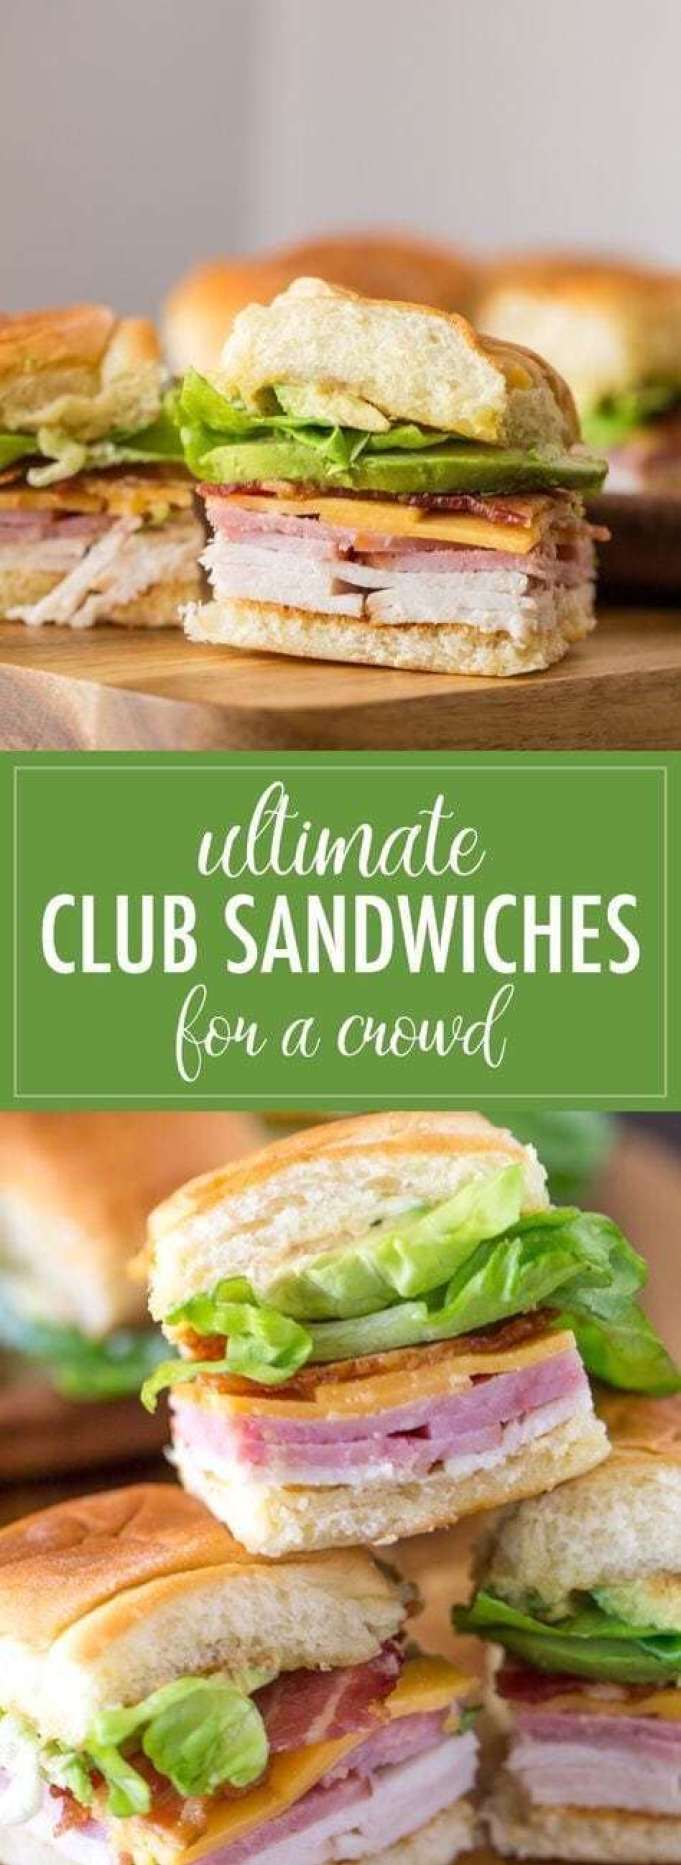 Ultimate Club Sandwiches - - 20 Best Croissant Sandwich Recipes